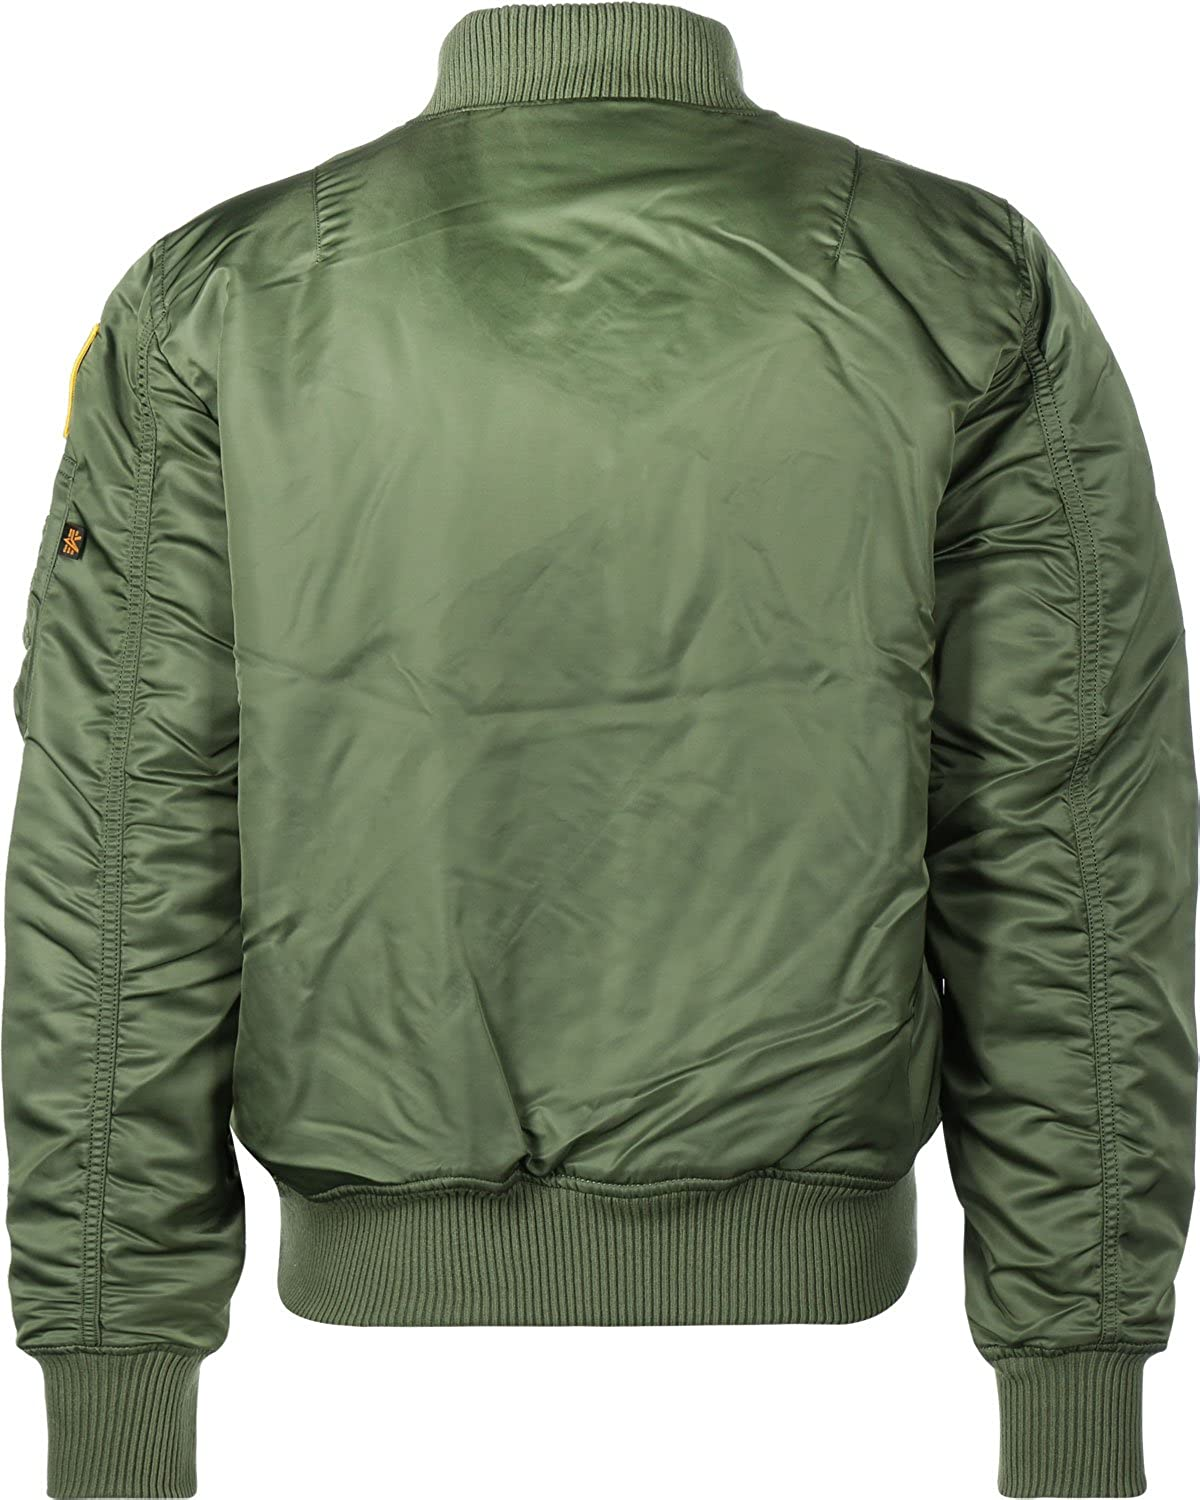 Amazon.com  Alpha Industries MA-1 VF NASA Astronaut Flight Jacket ... 553d4f6e5e9